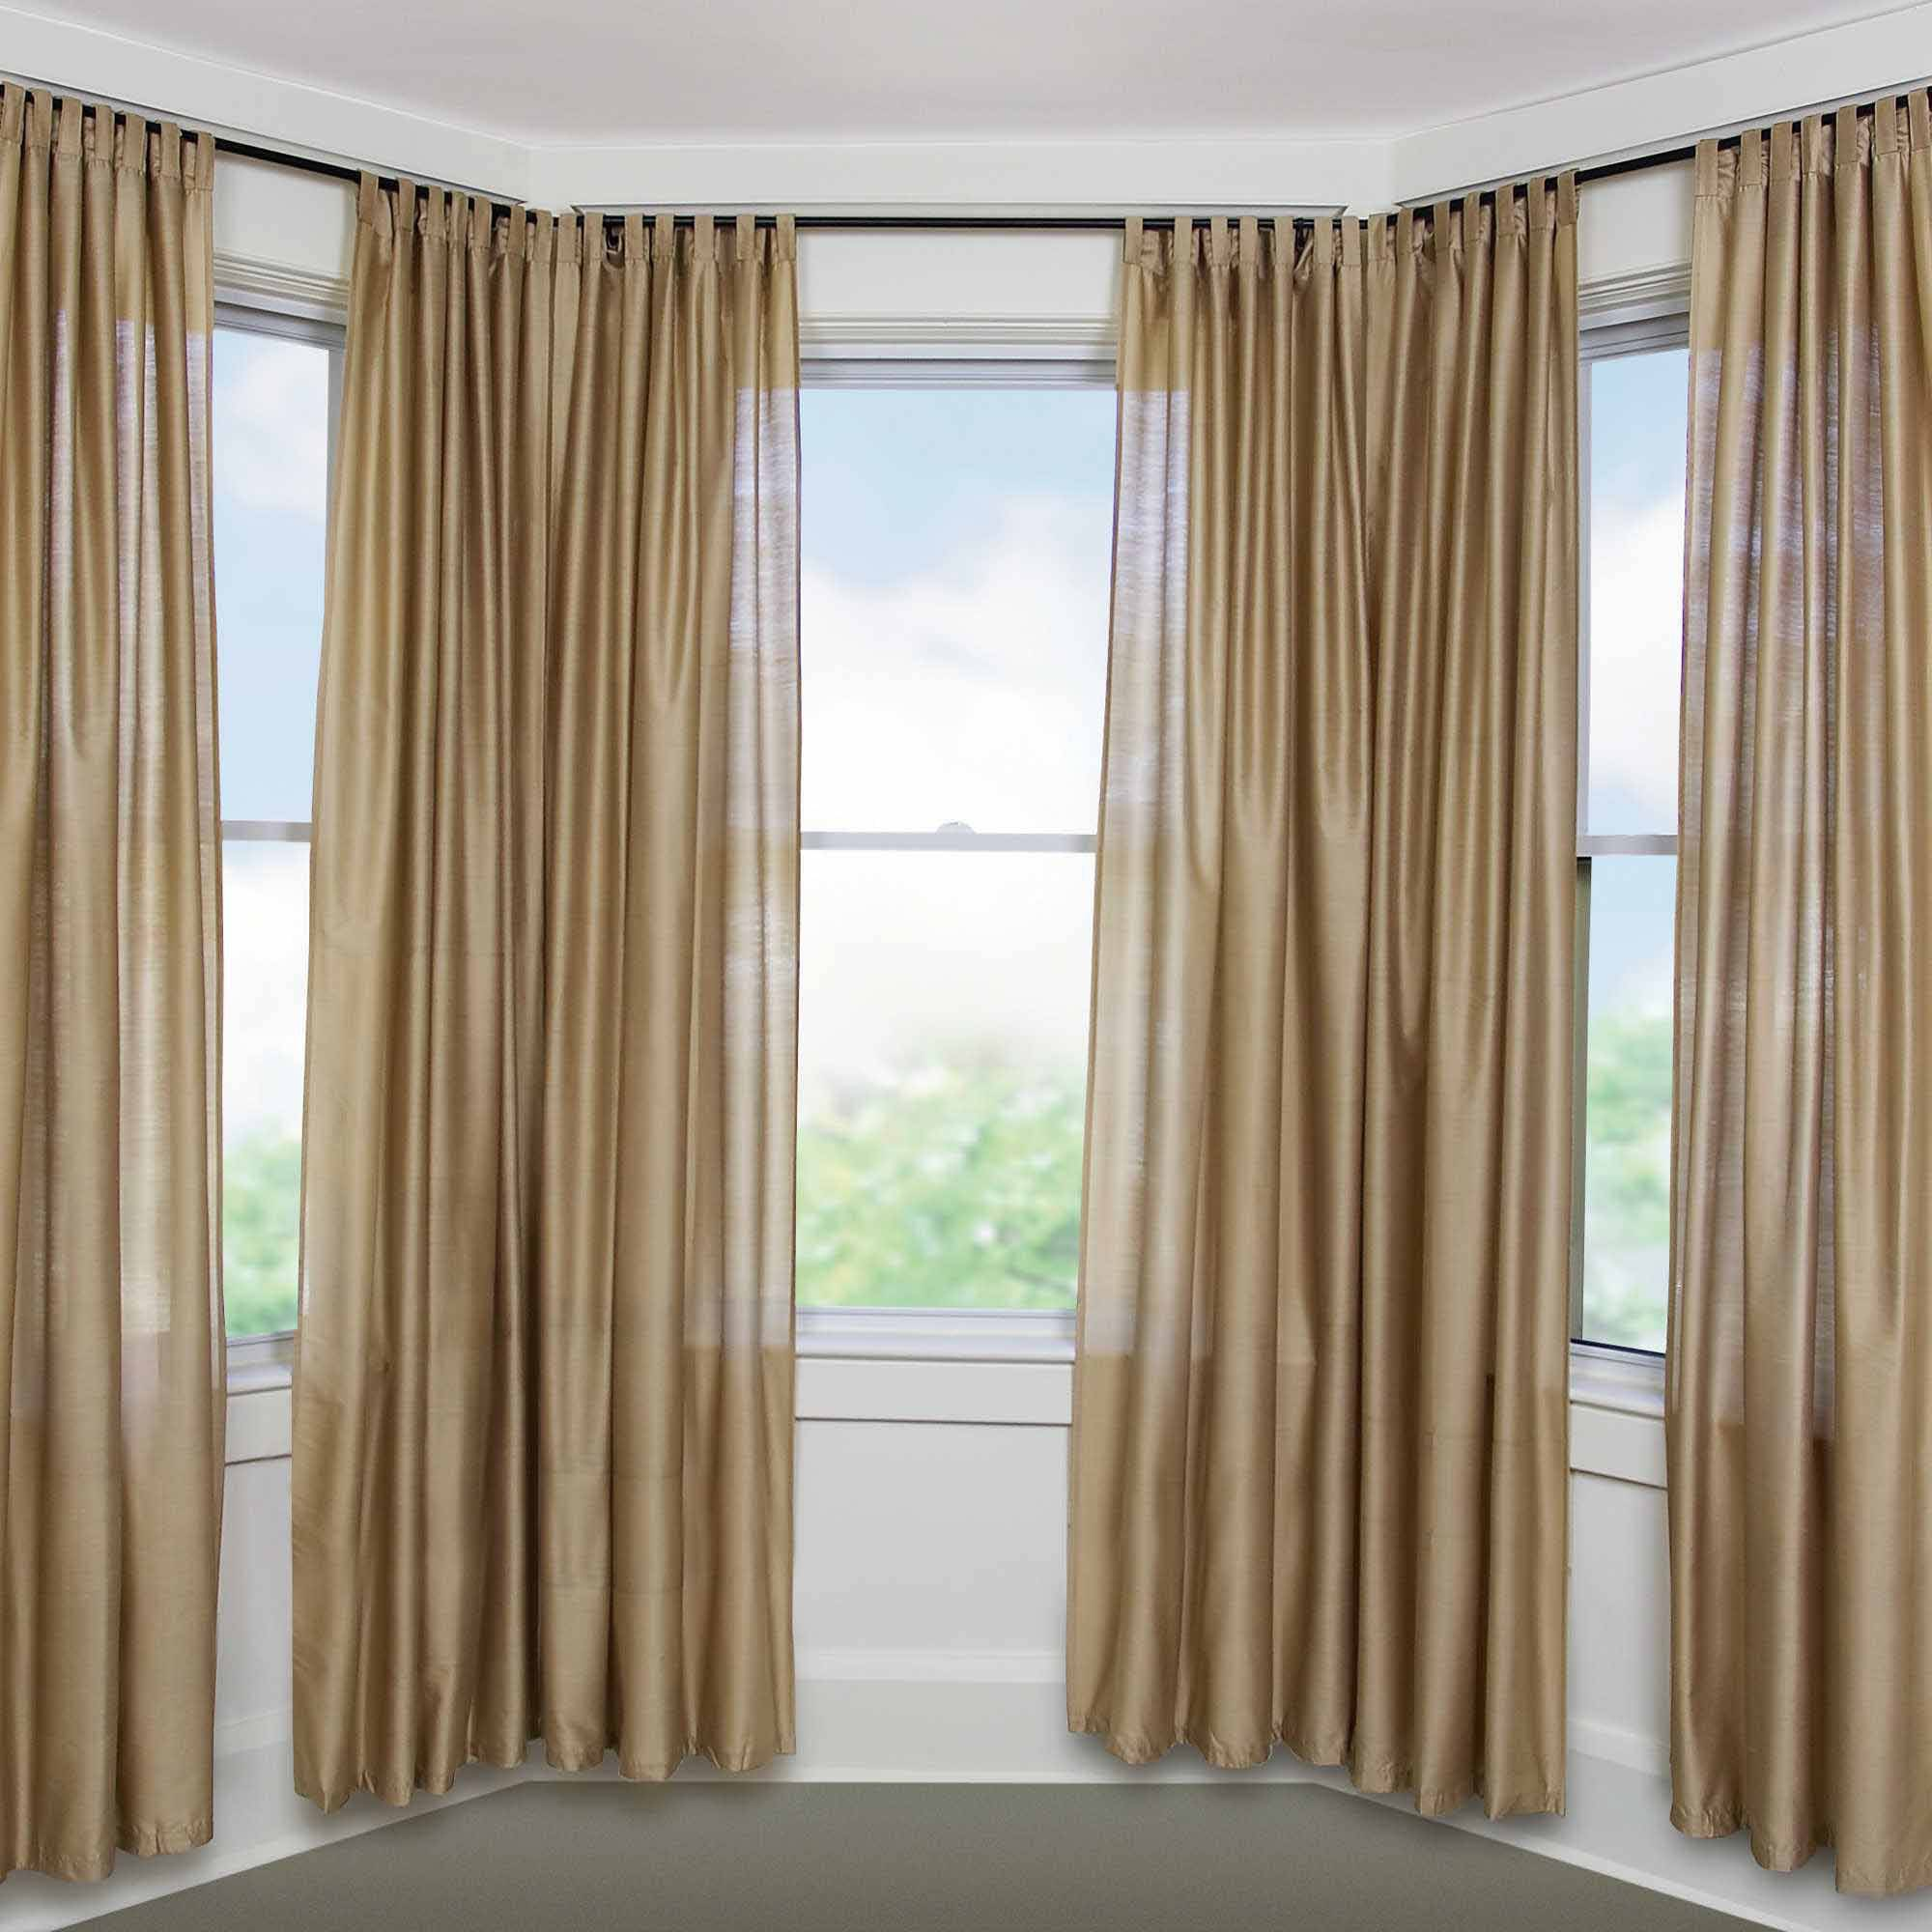 Jcpenney Window Treatments Incredible Best Grey Blackout - Curtain drapery ideas